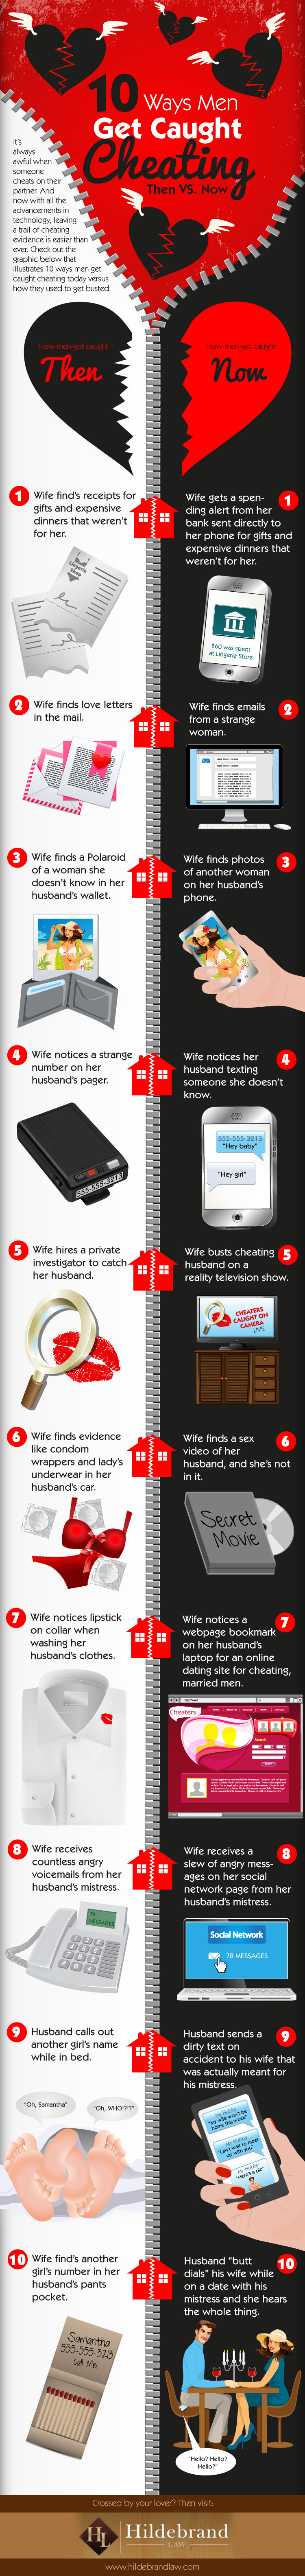 10 Ways Men Get Caught Cheating: Then vs Now